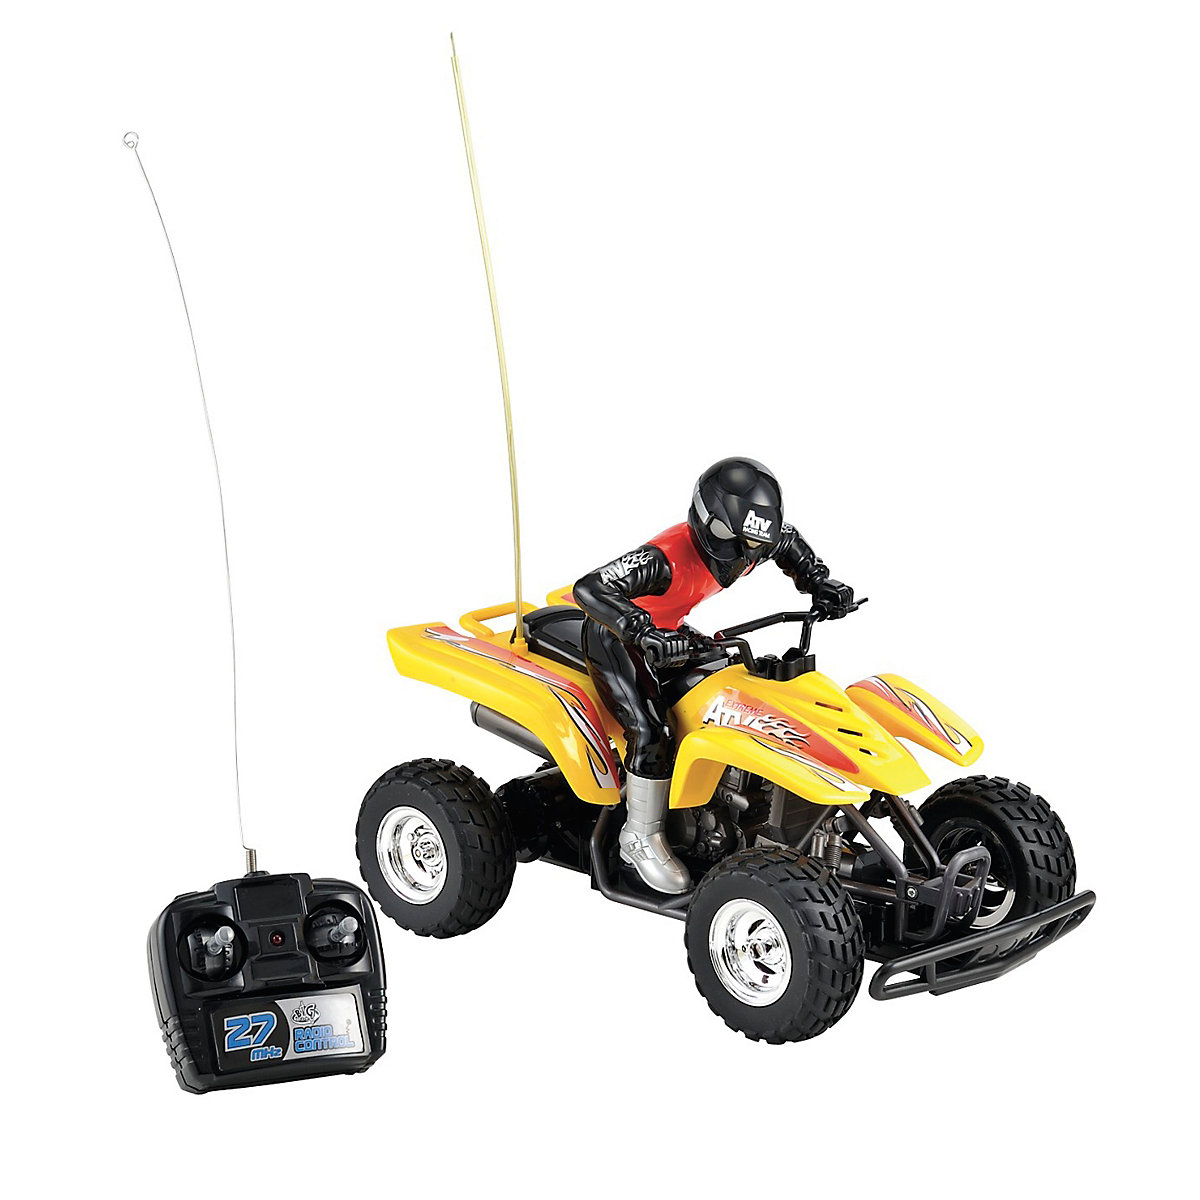 New Big City Boy Radio Control Quad Bike Remote Control Toy From 3 years - Remote Control Gifts